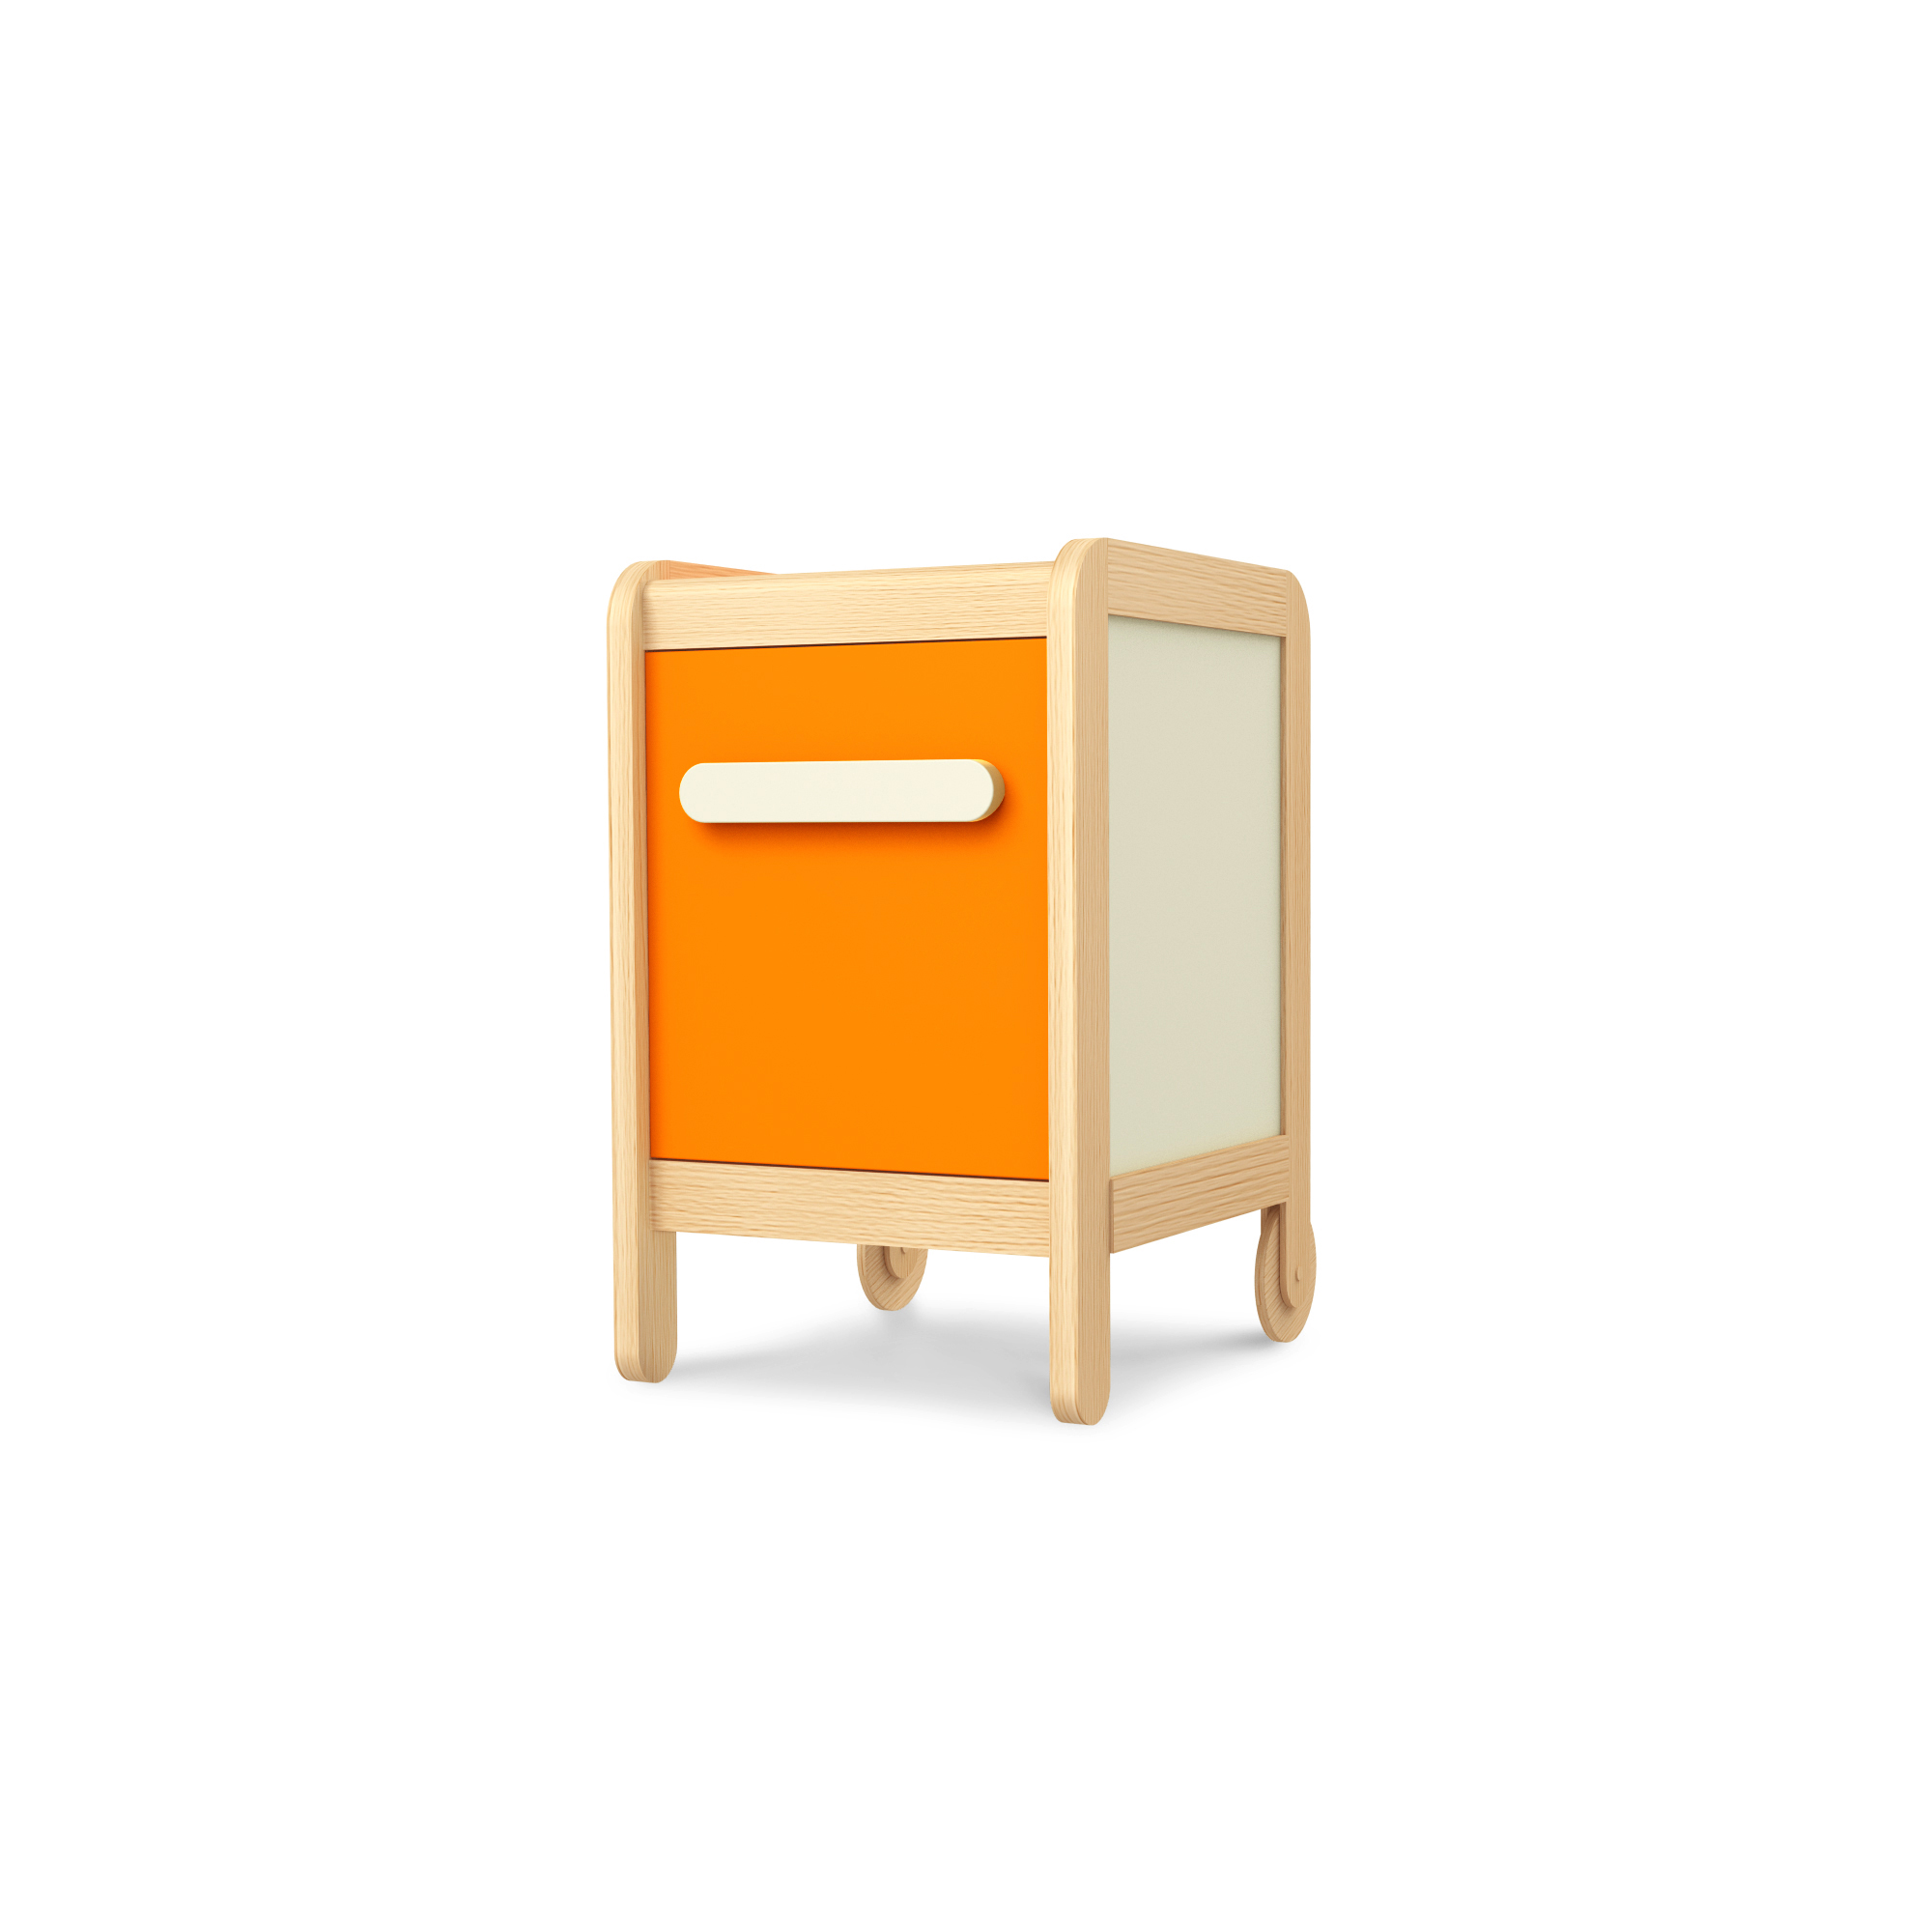 Kleine Kommode Simple Orange, Timoore